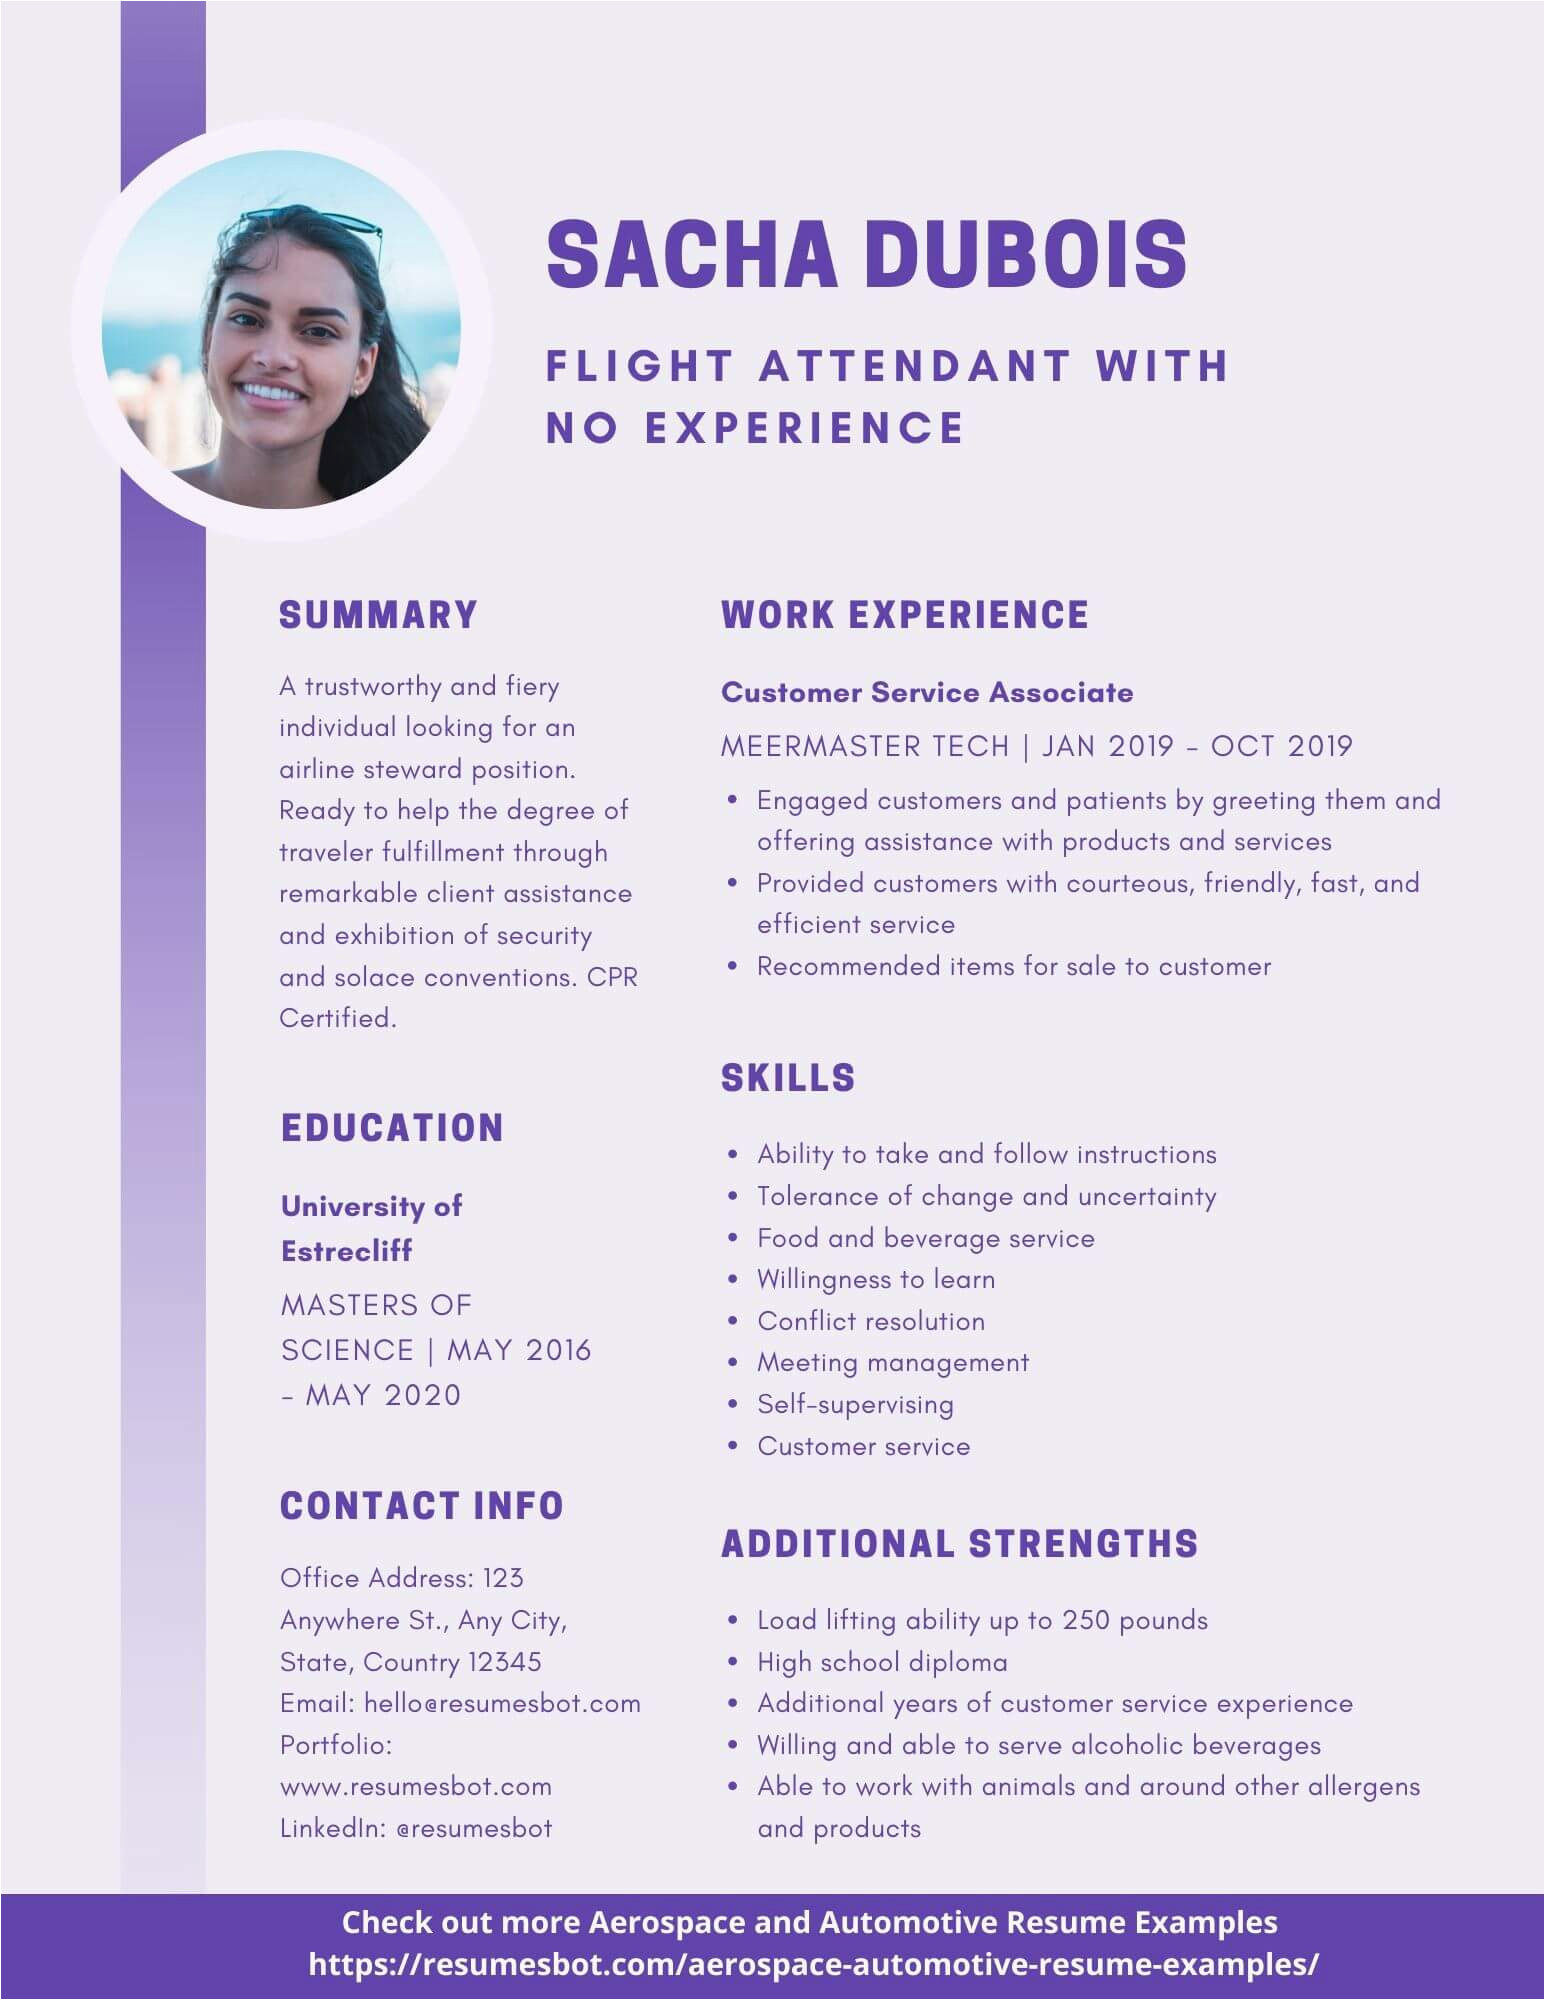 Sample Resume Flight attendant No Experience Flight attendant with No Experience Resume Samples and